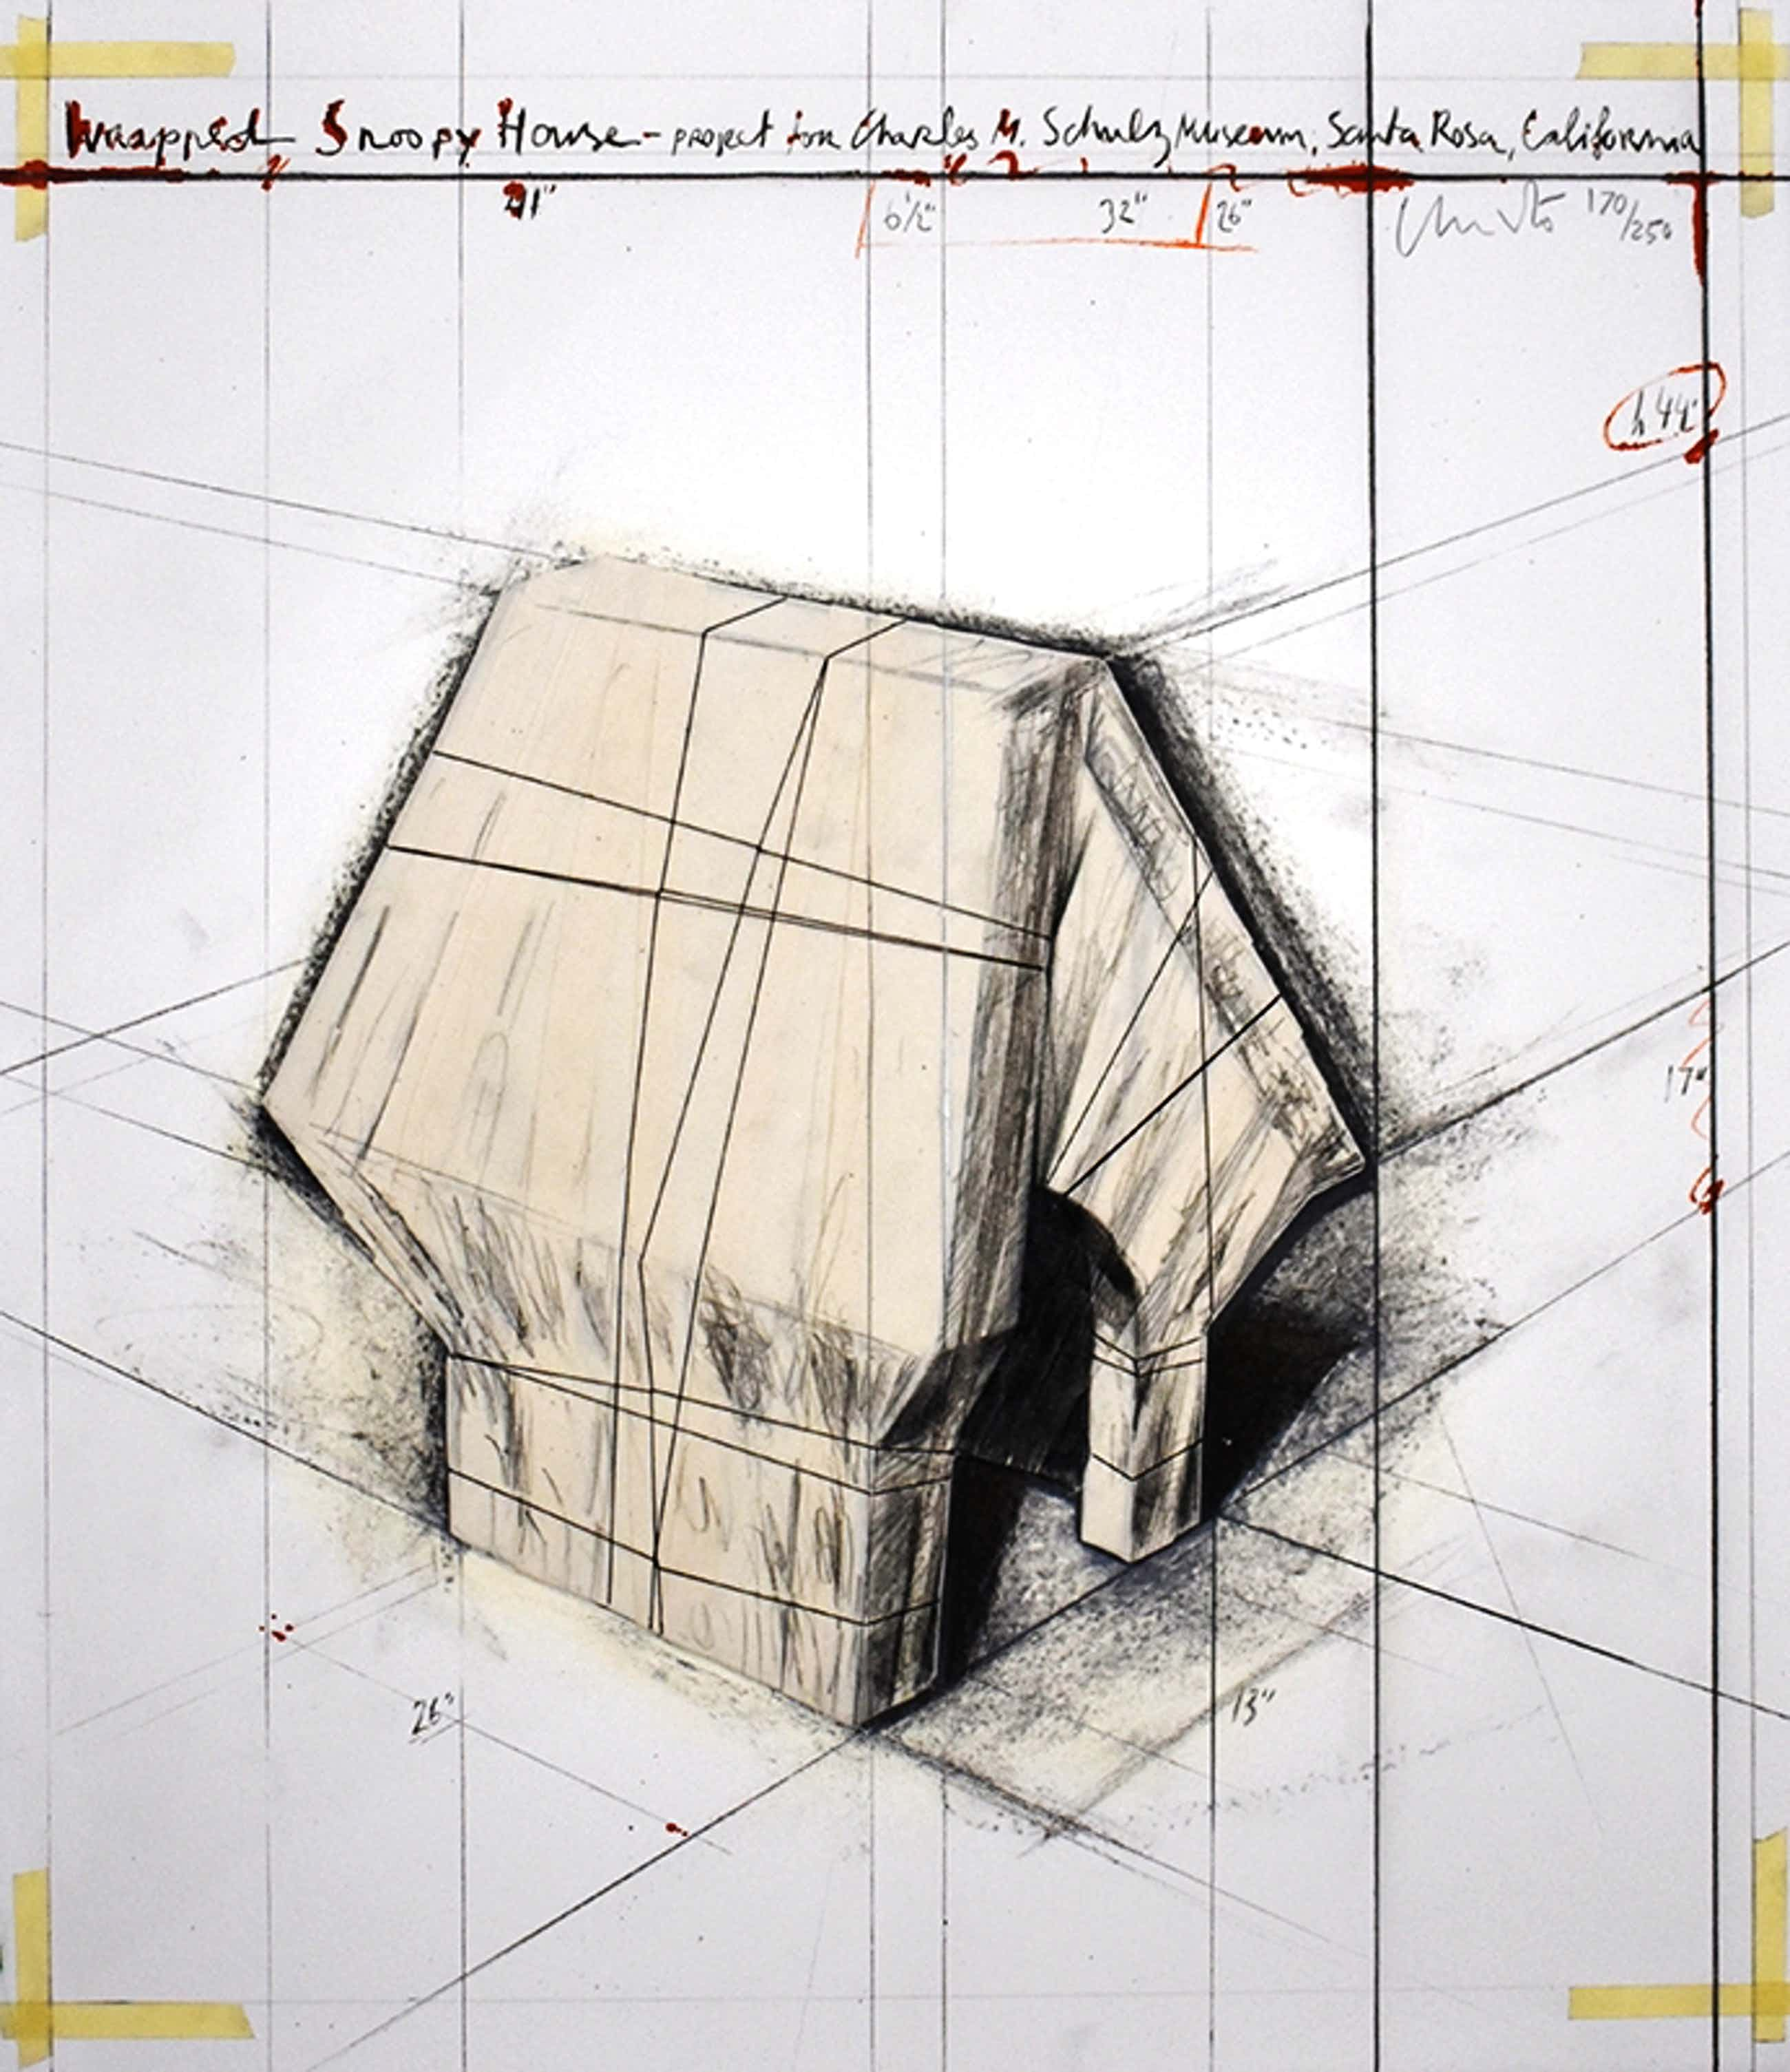 Christo - Wrapped Snoopy House kopen? Bied vanaf 12000!